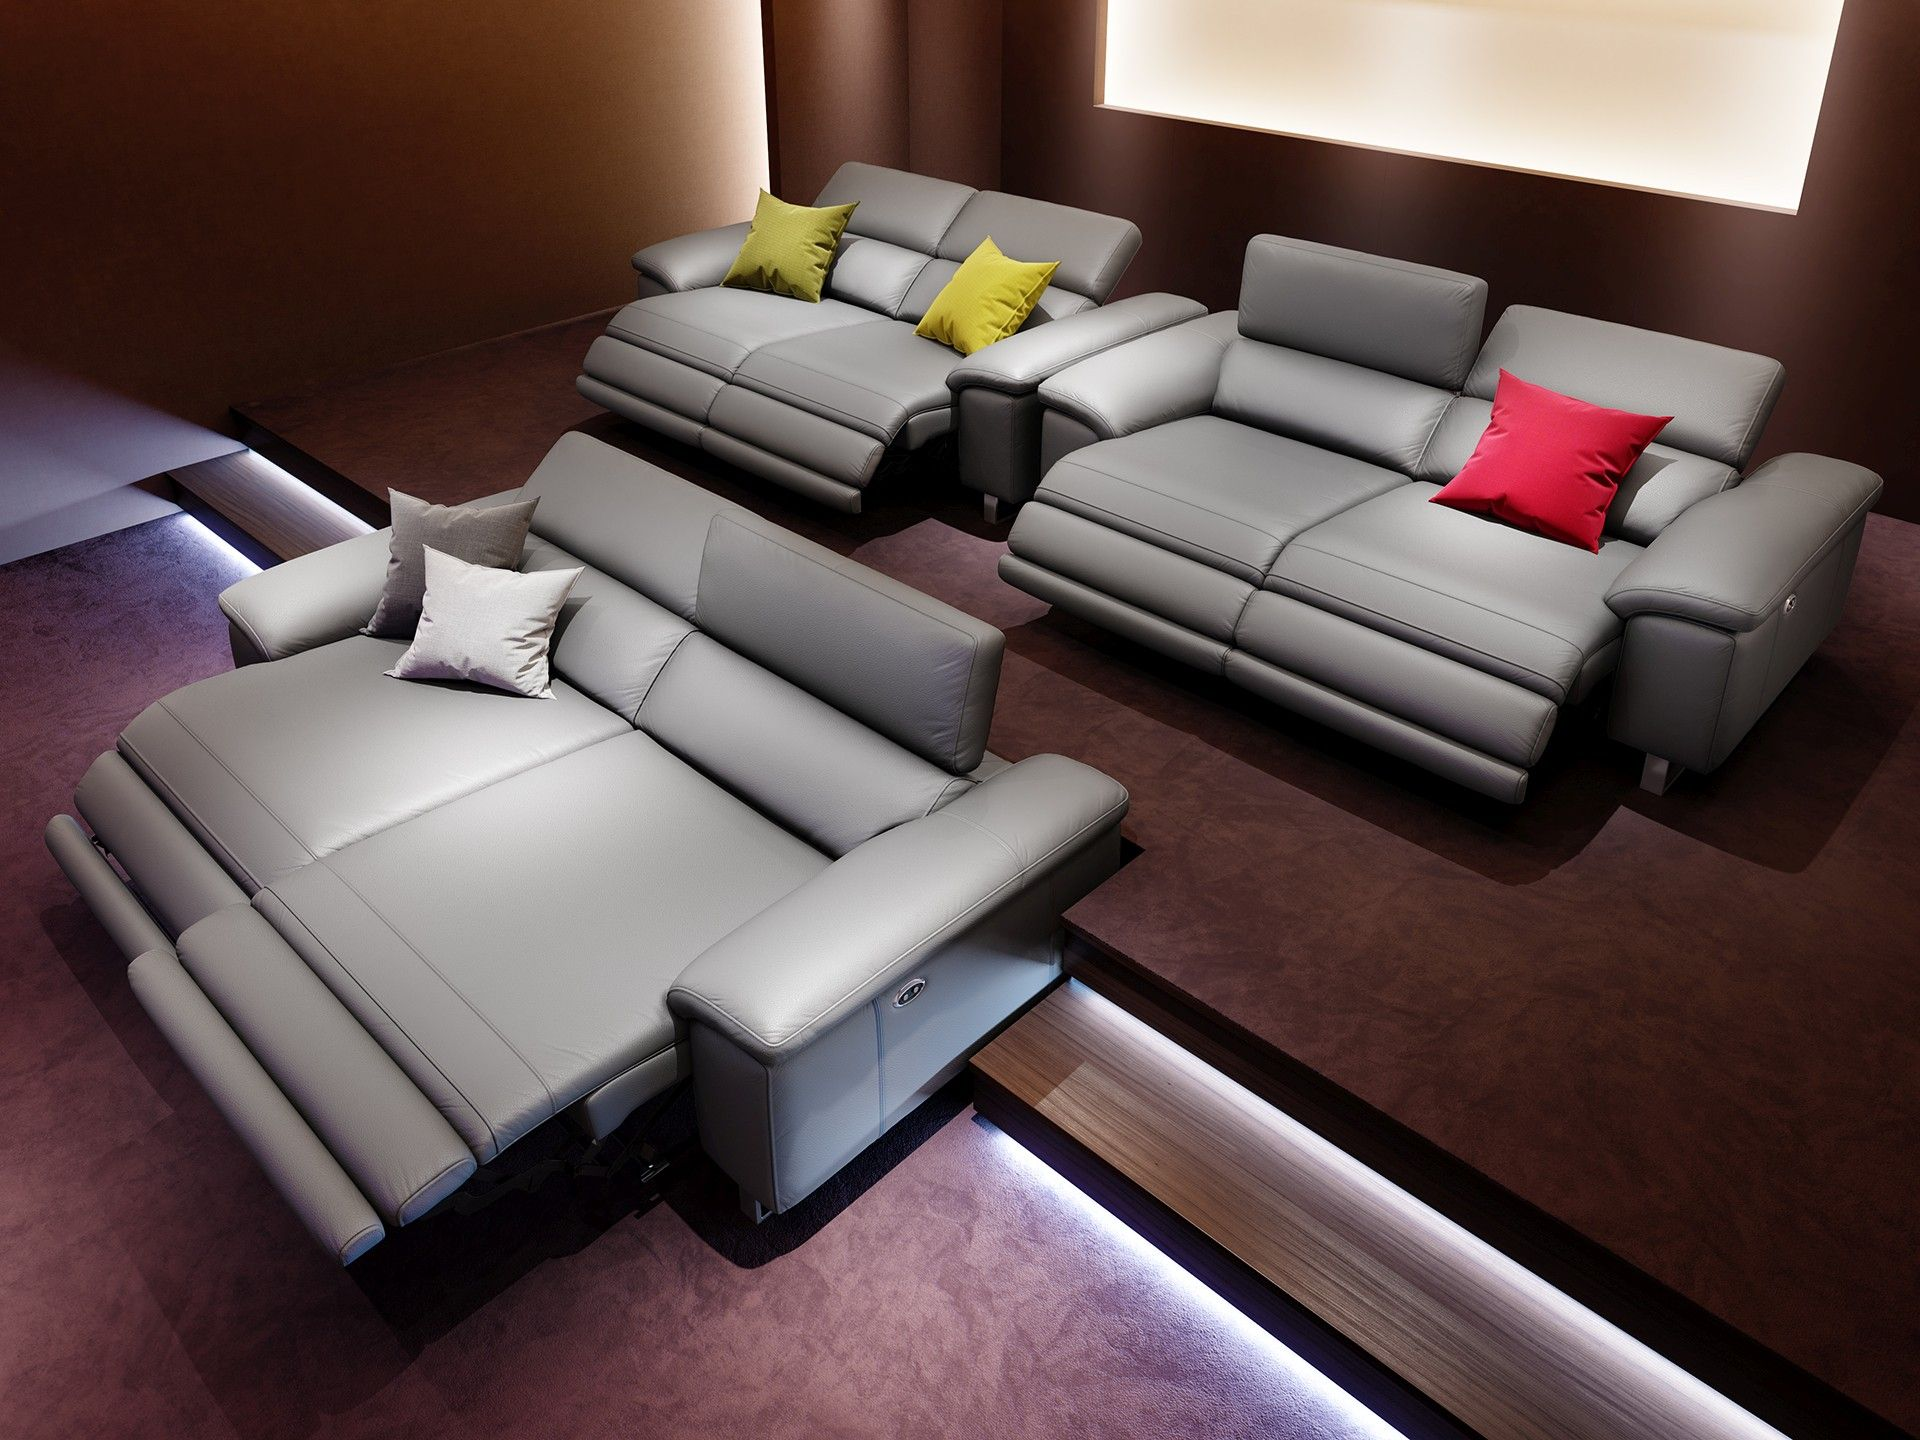 designer ledersofa mit relaxfunktion sofanella ko 39 s theater room sofa home cinemas couch